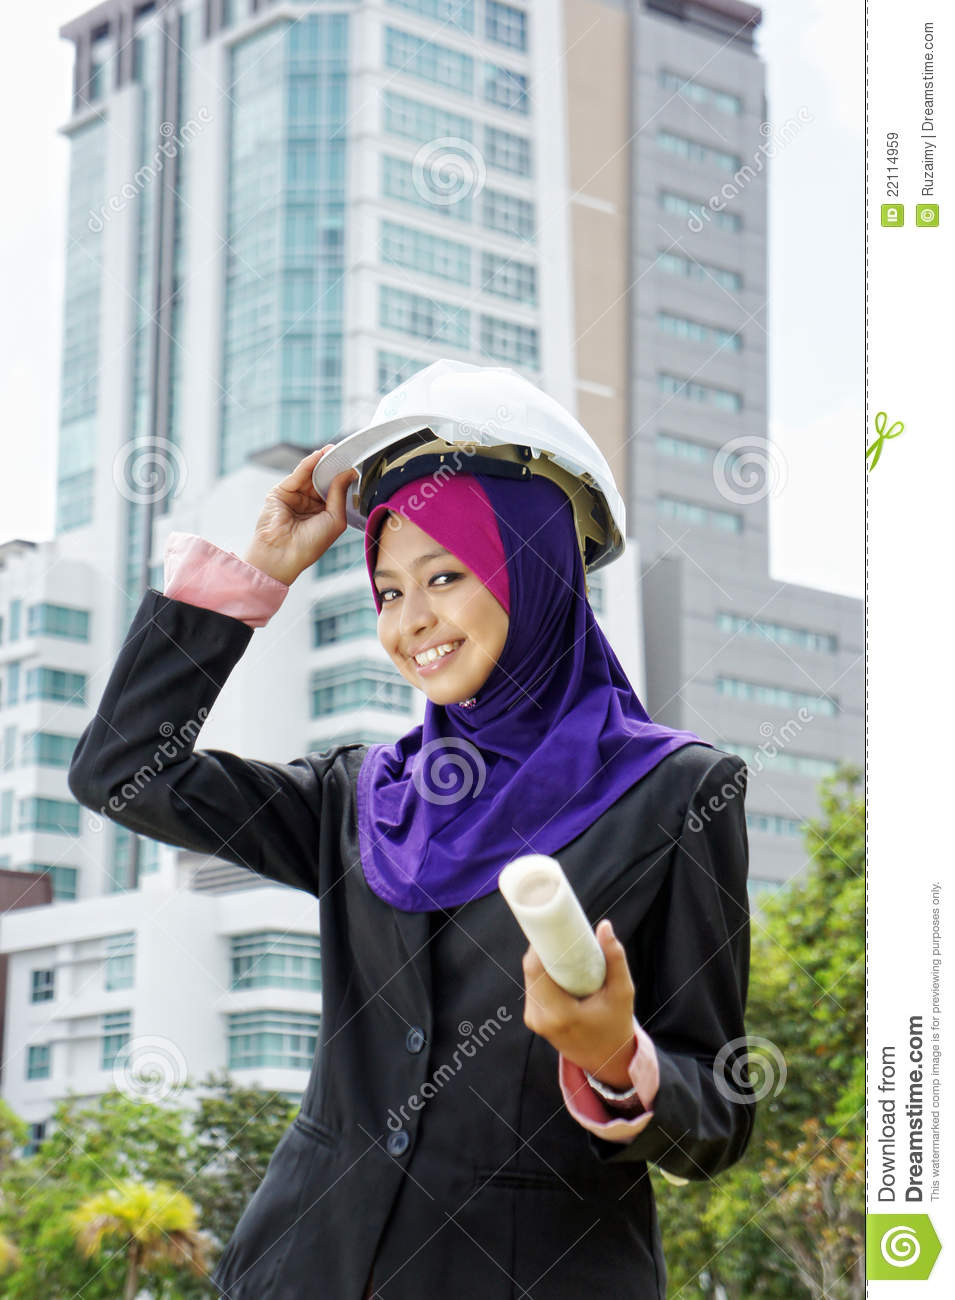 gerlach muslim single women 197 – rule: even though looking at the face and hands of a muslim woman in hijab or if you wish to see further development of al-islamorg.